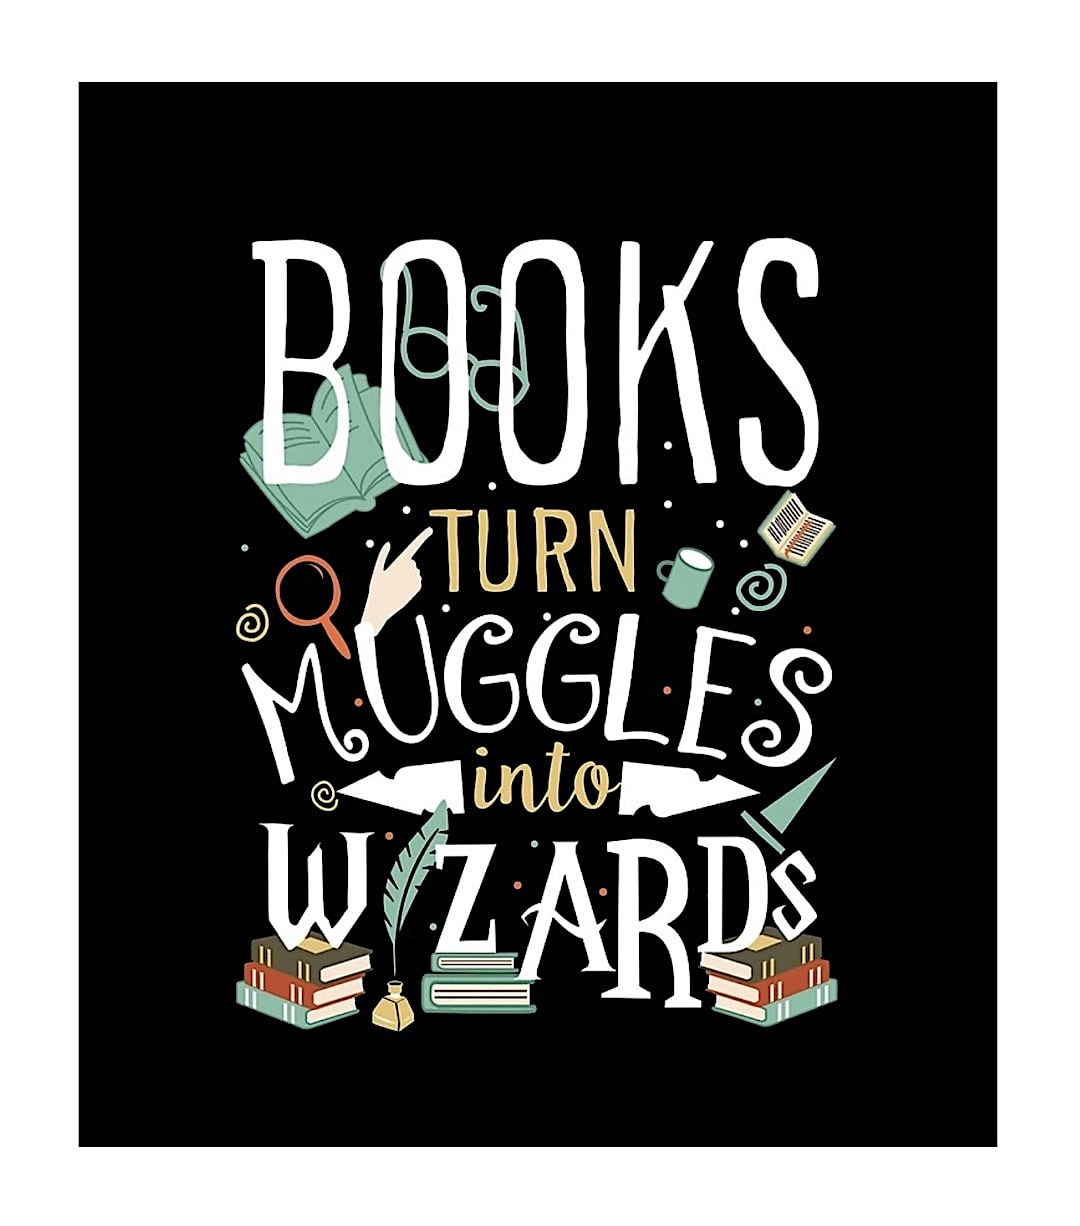 Books turn muggles into wizards - read poster